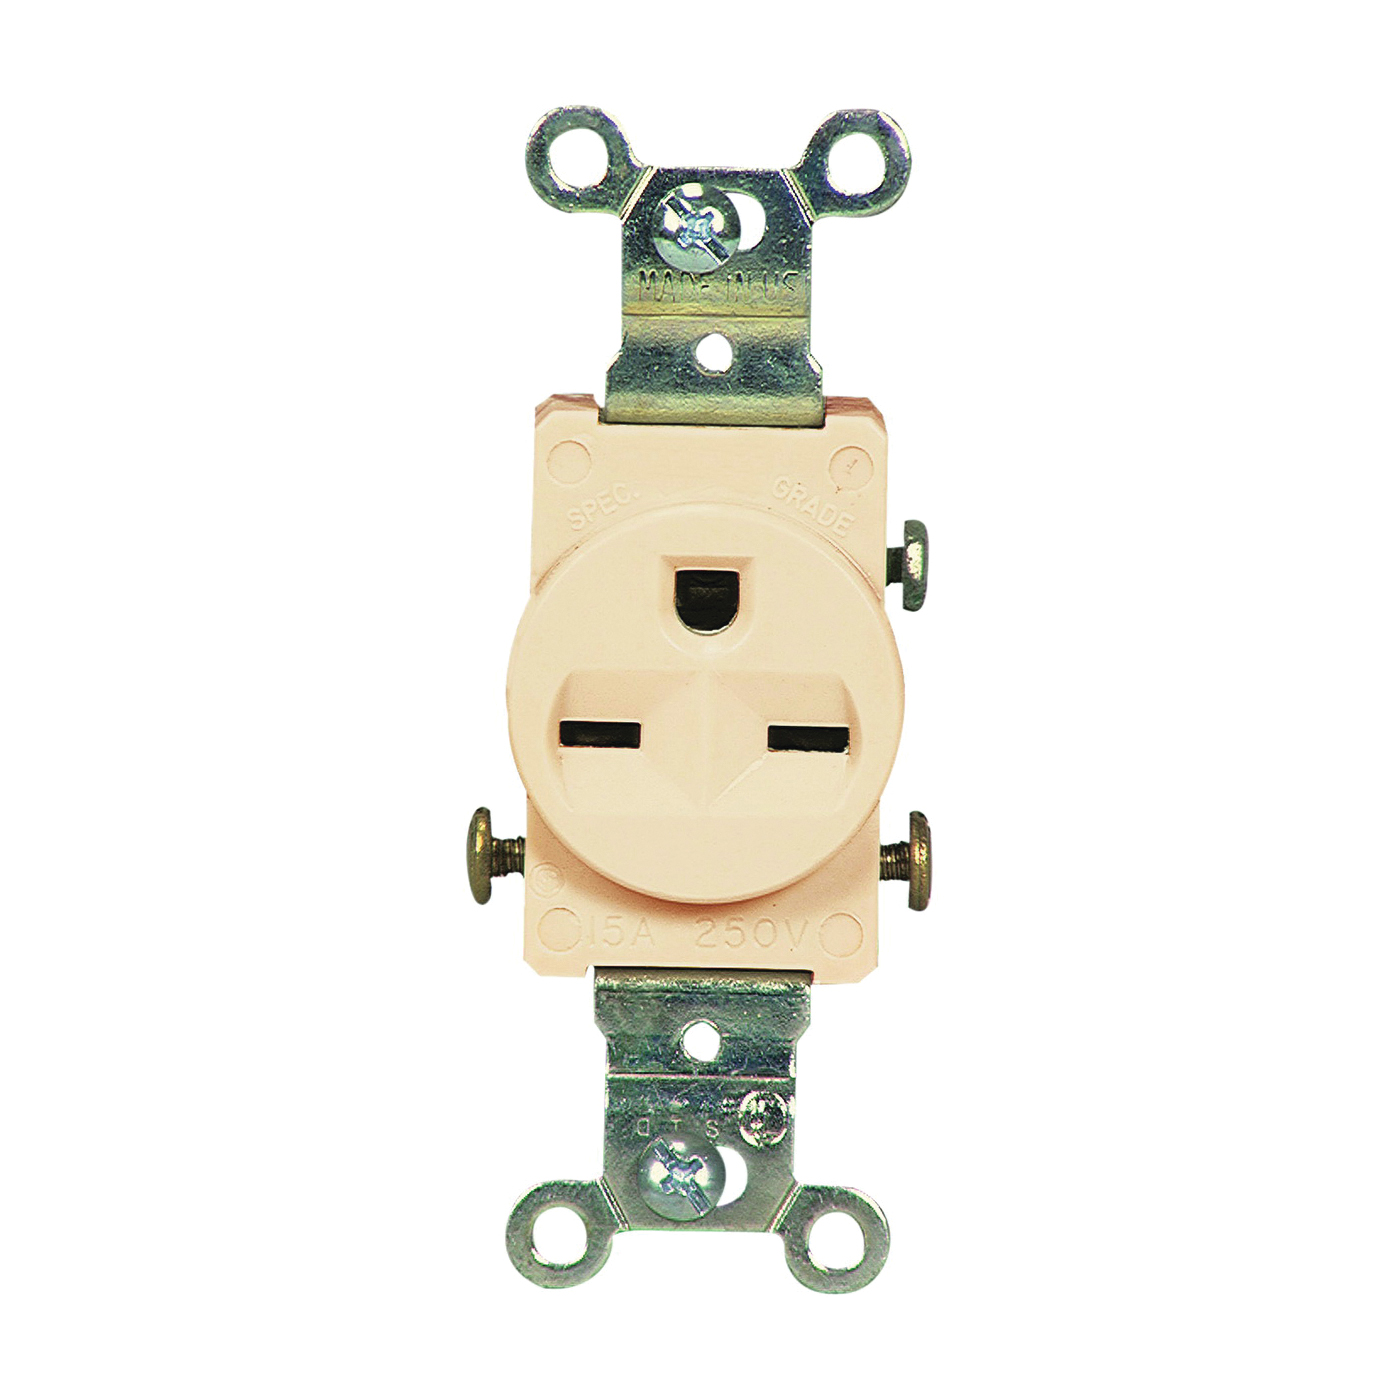 Picture of Eaton Wiring Devices 816V-BOX Single Receptacle, 2-Pole, 250 V, 15 A, Side Wiring, NEMA 6-15R, Ivory